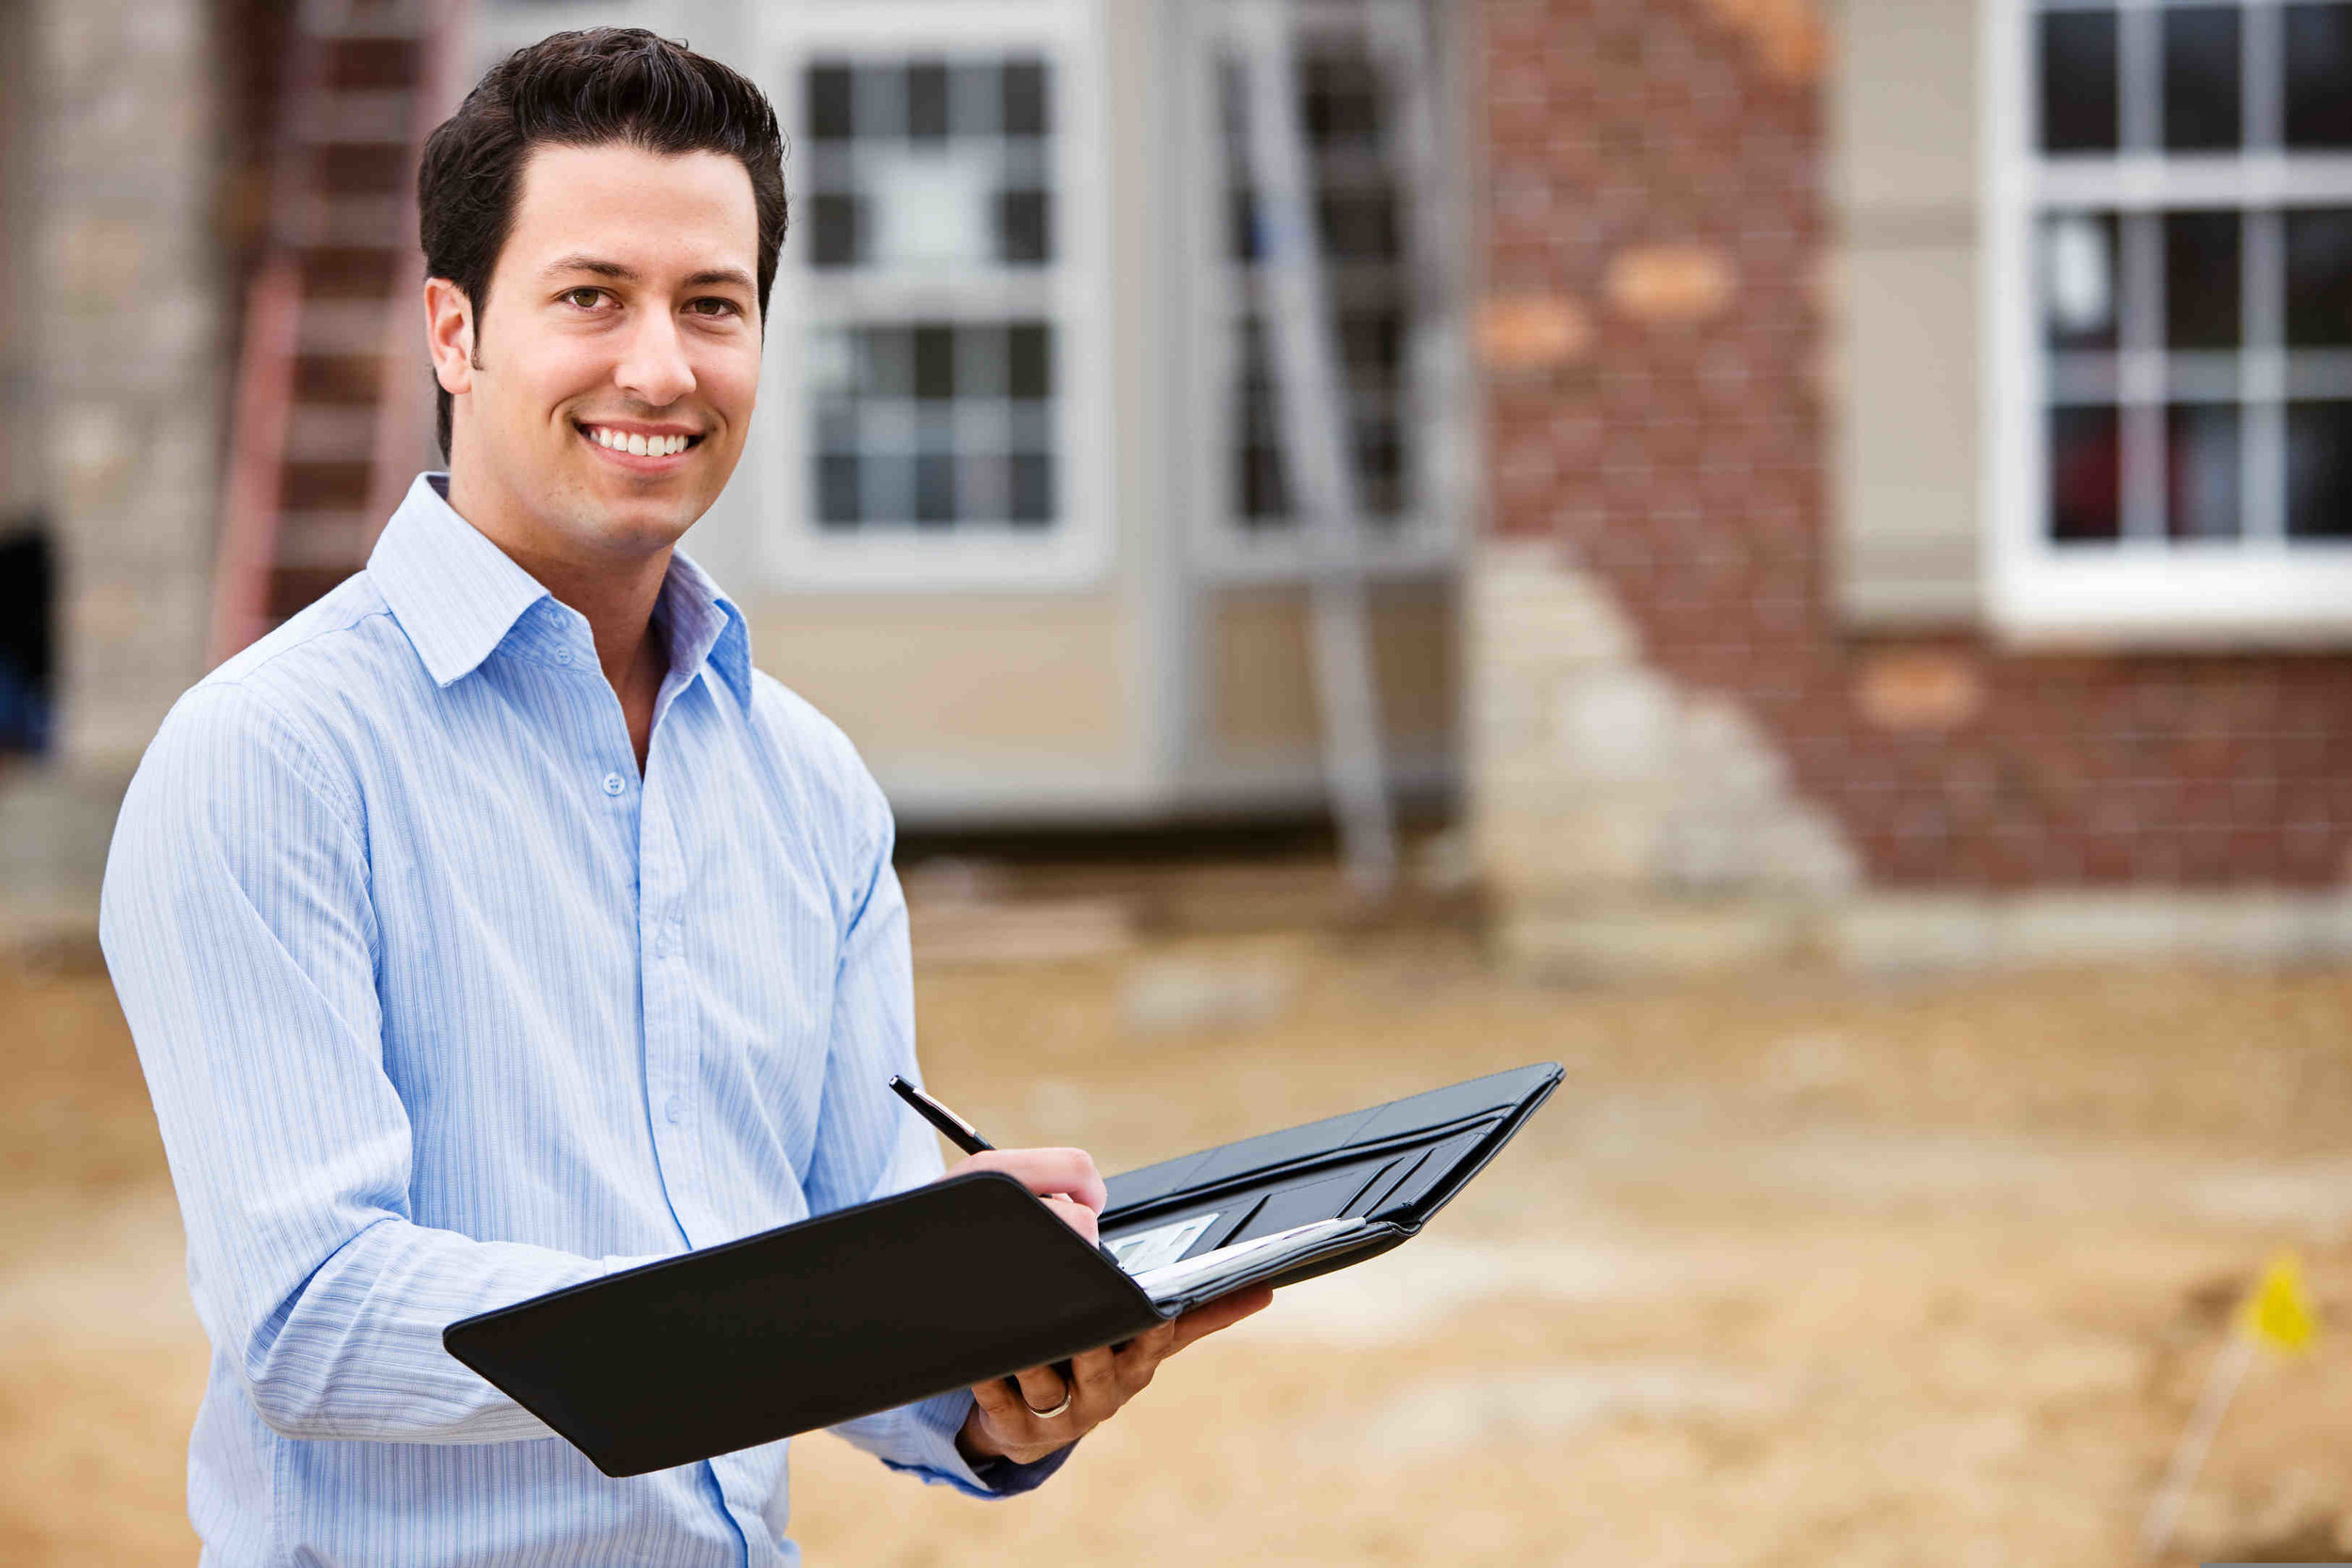 real estate agent smiling and writing notes in front of house